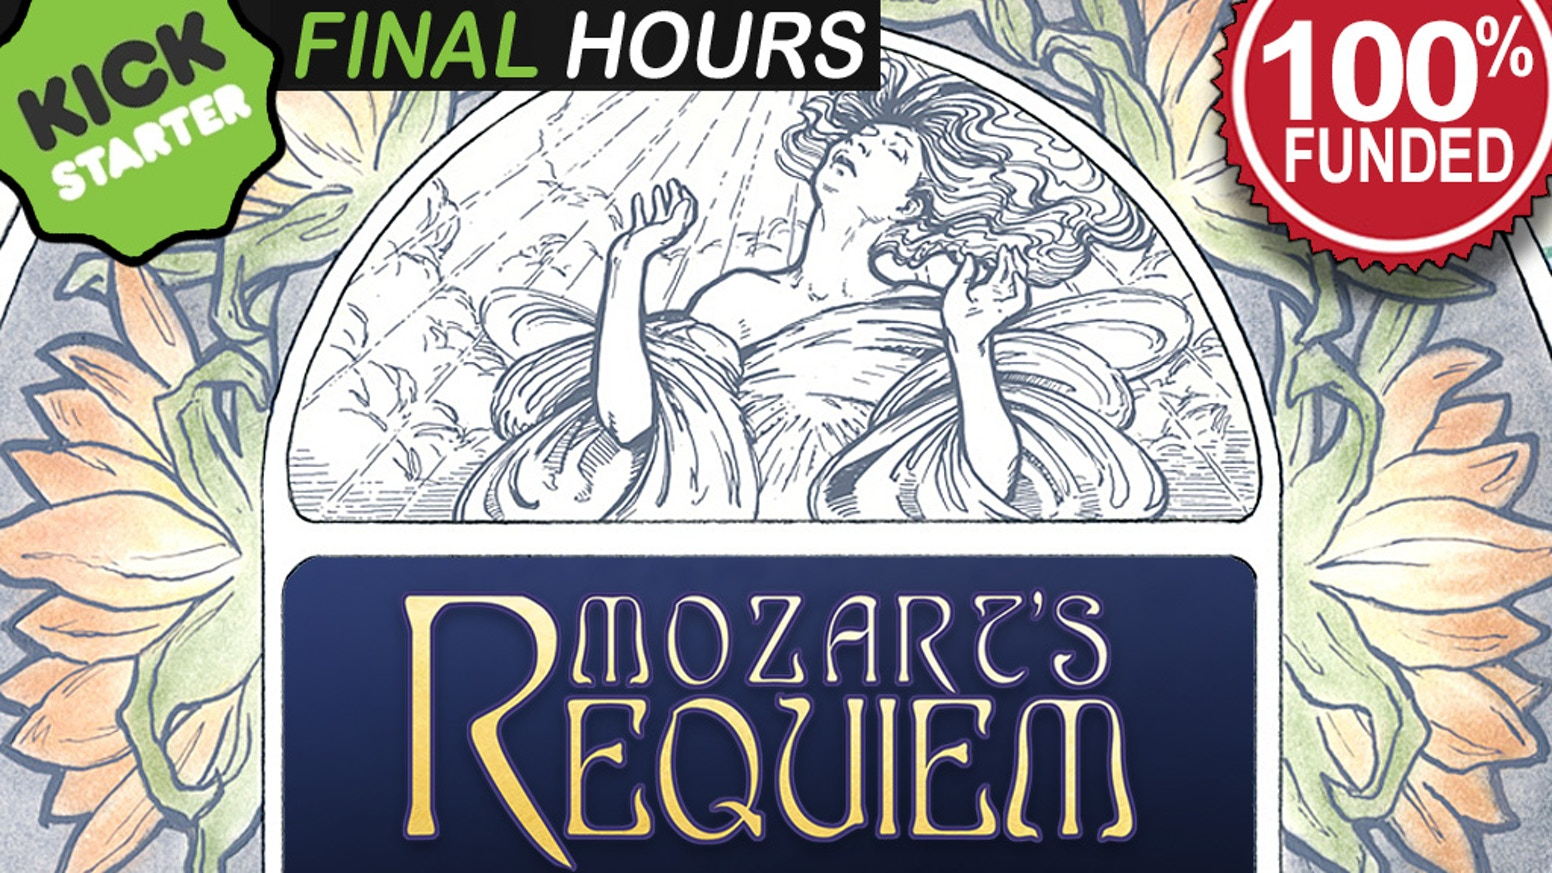 An Art Nouveau inspired 60-page book with full-page illustrations, lyrics in Latin and English, and a brief history on Mozart's Requiem